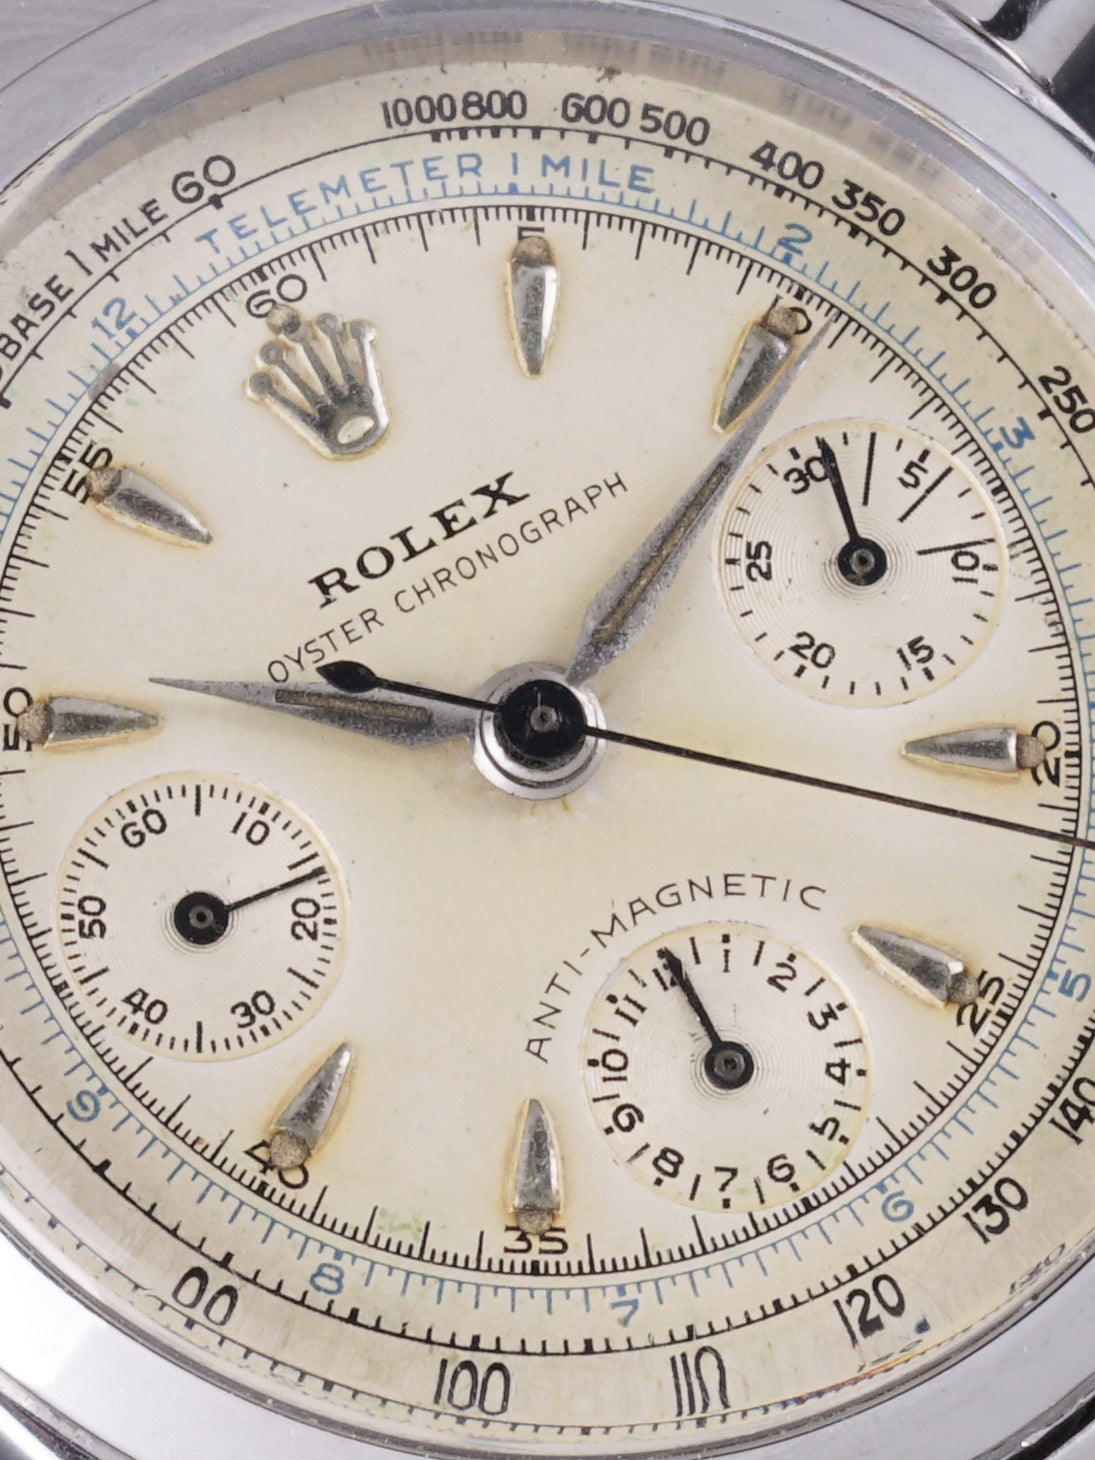 1959 Rolex Chronograph Pre-Daytona (Ref.6234) Box, Papers, Letters From Original Owner